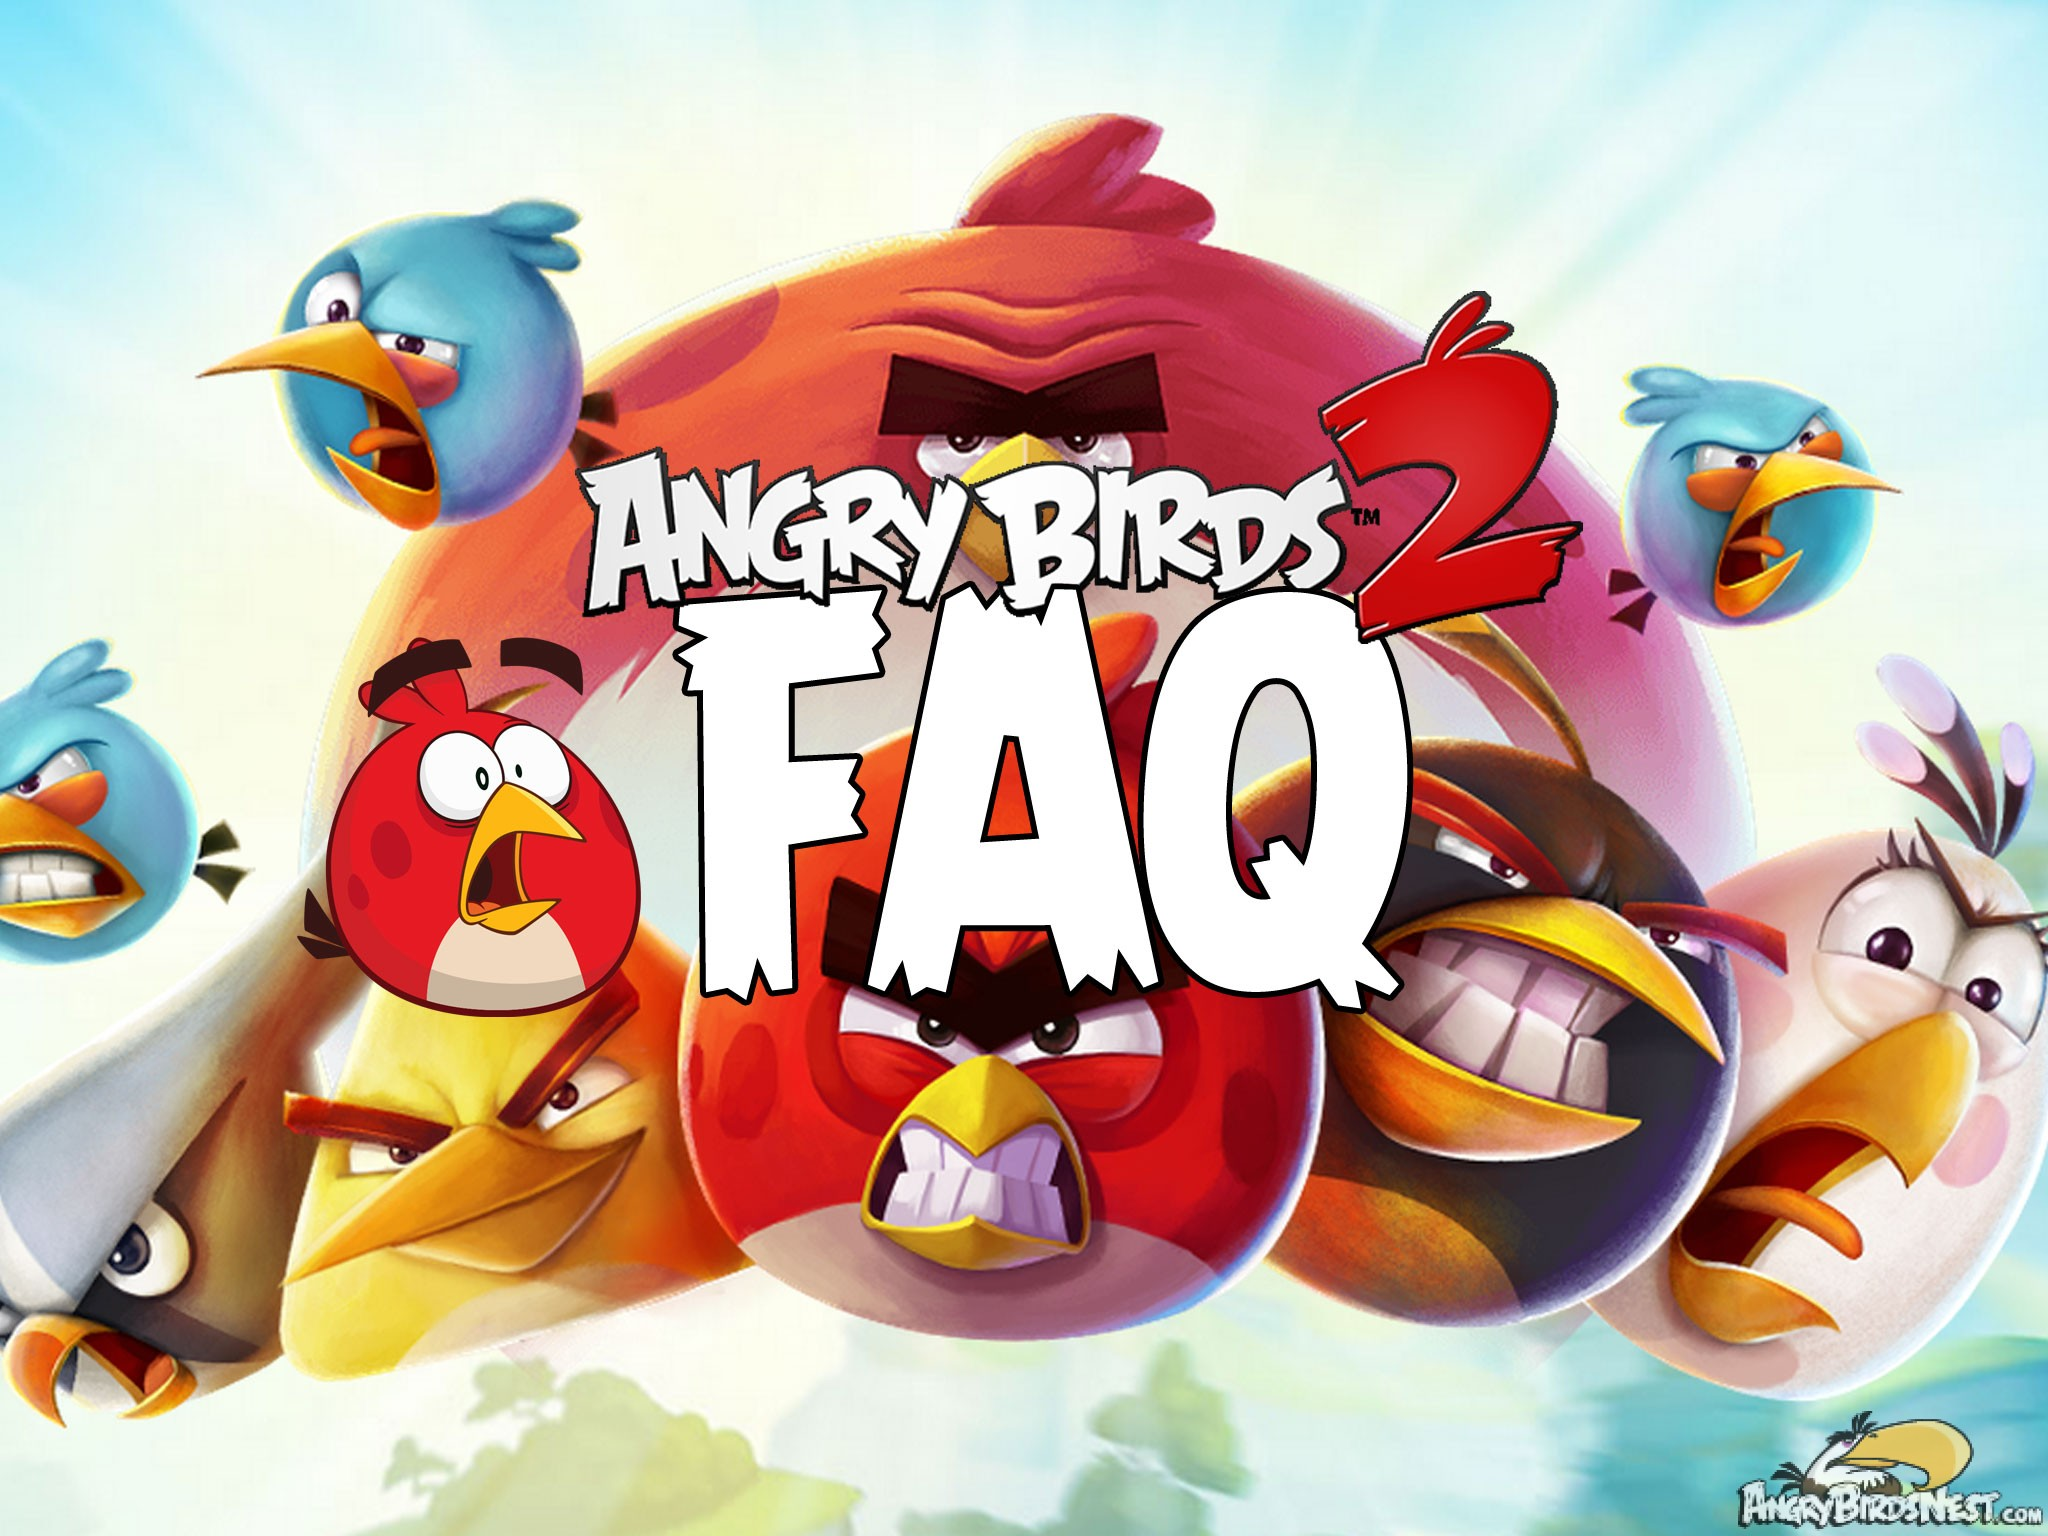 Angry Birds 2 Faq Frequently Asked Questions Angrybirdsnest